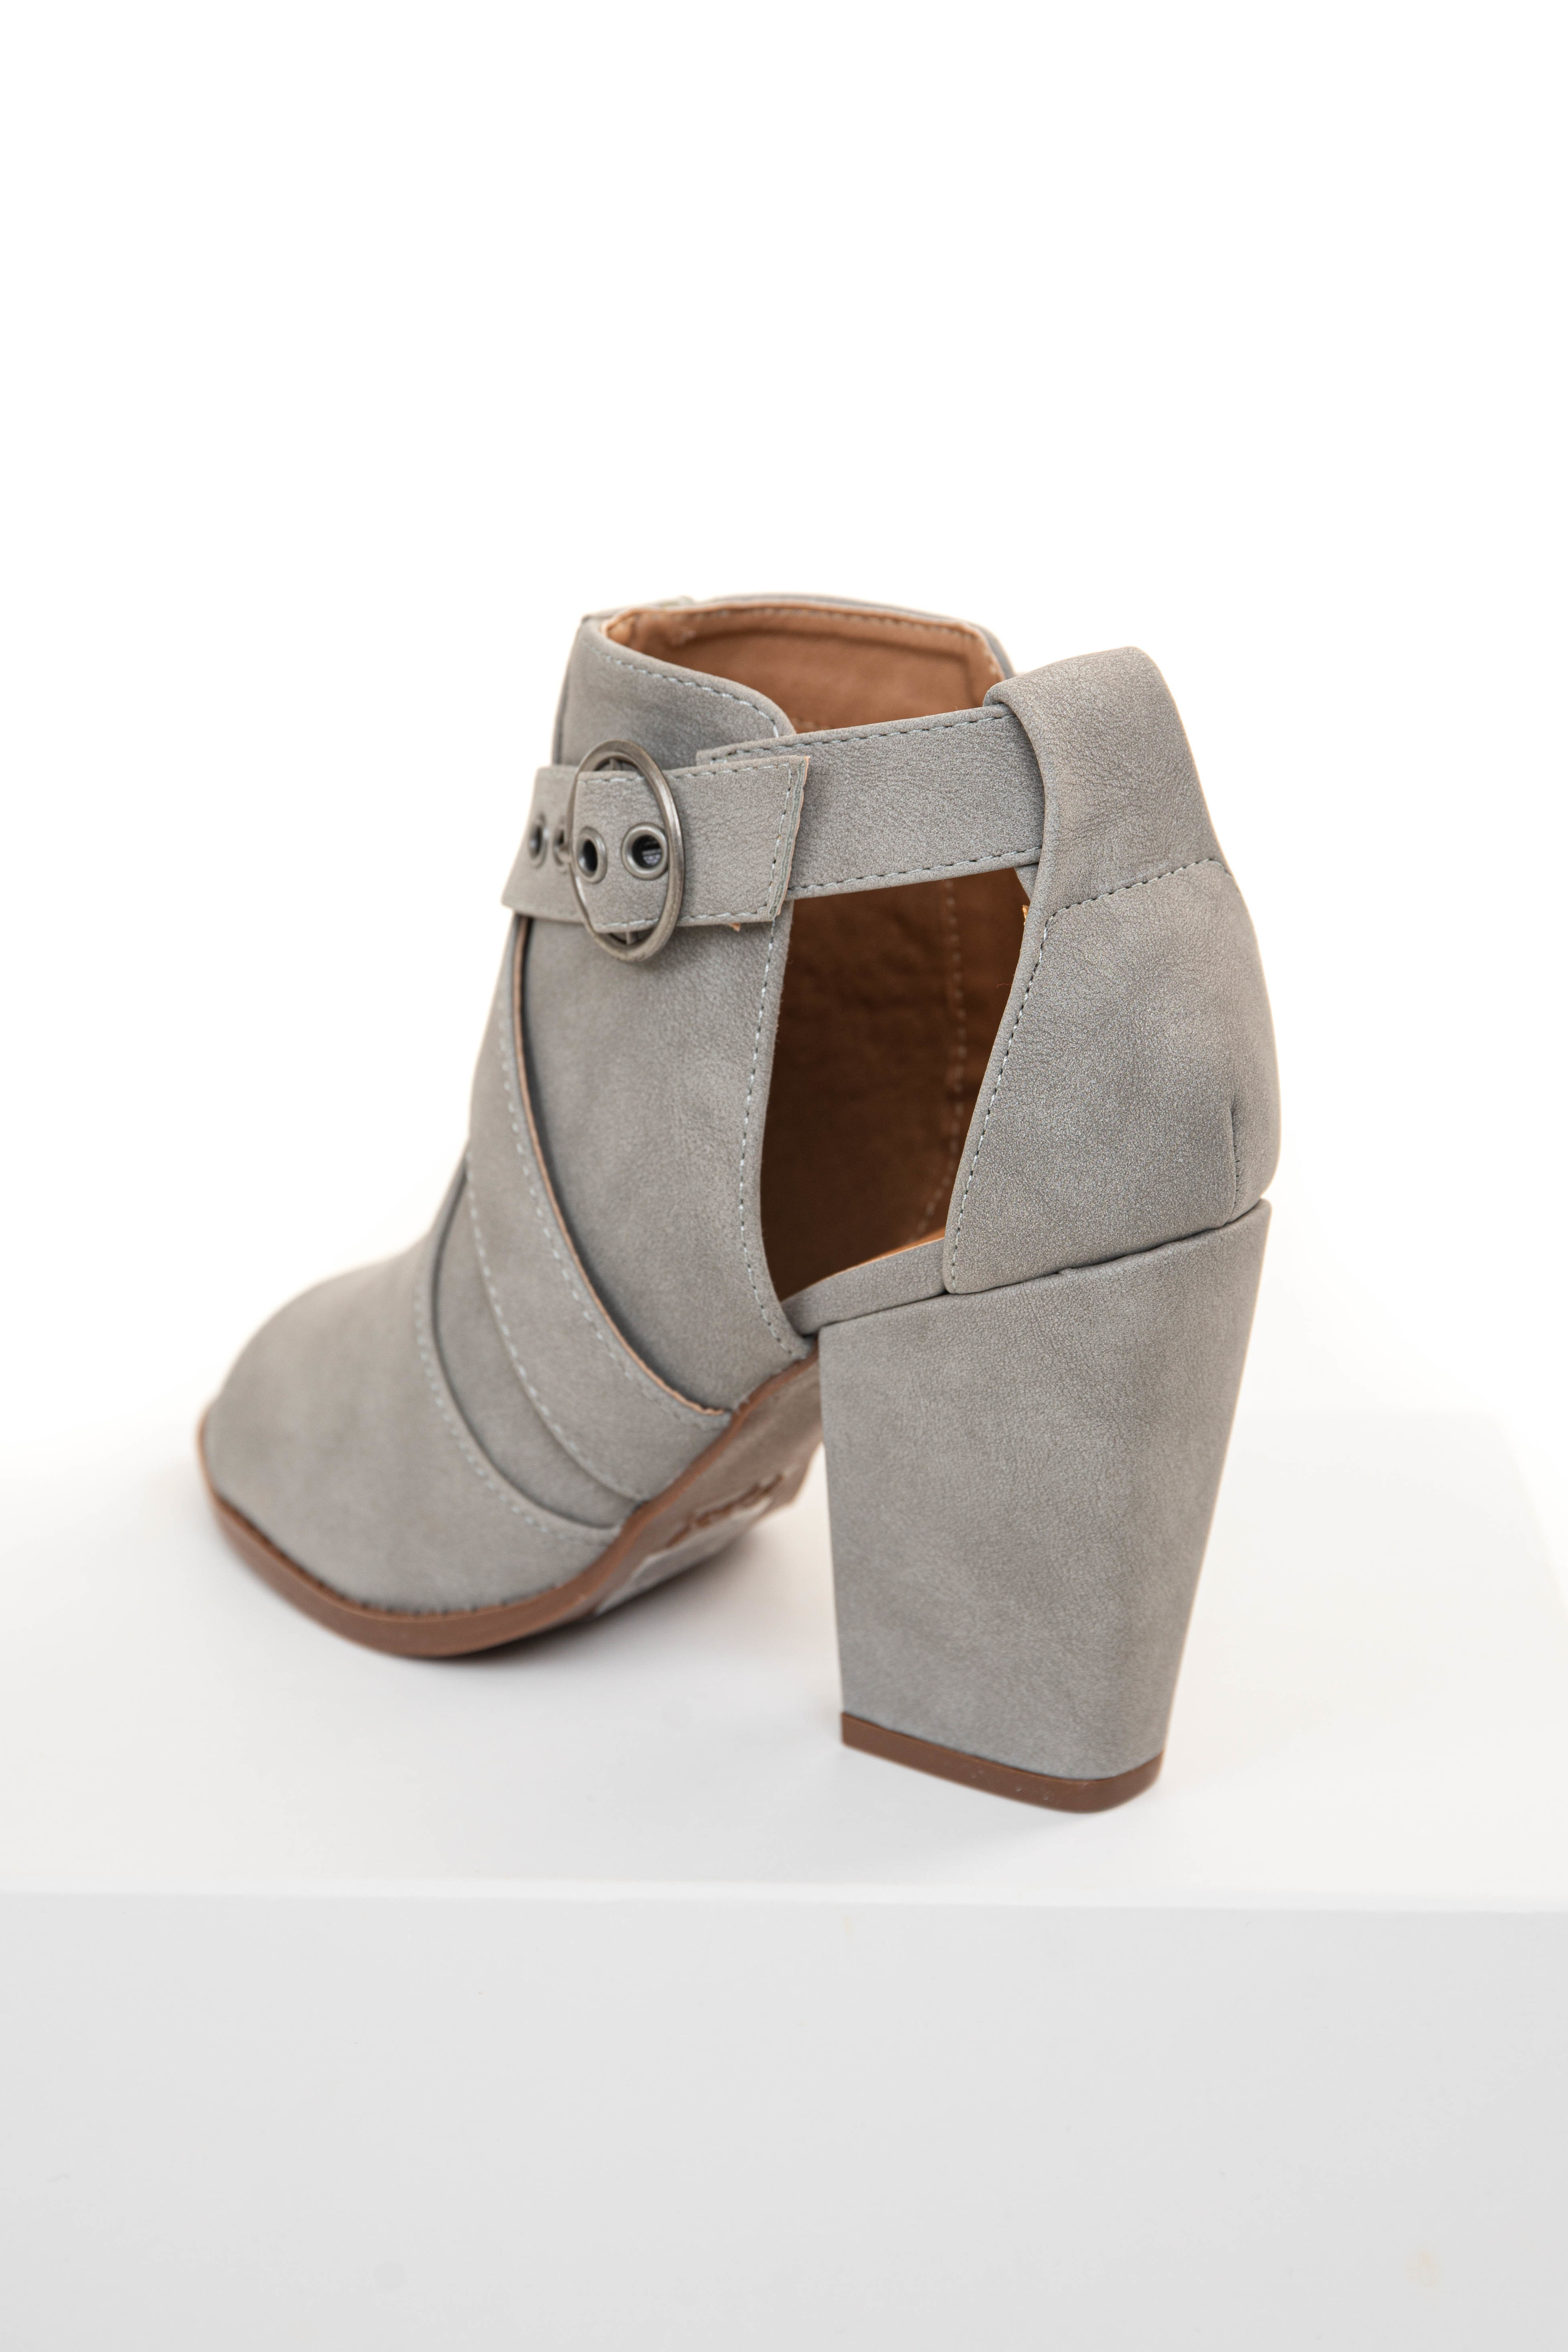 Dove Grey Faux Suede Open Toed Heels with Side Buckle Strap